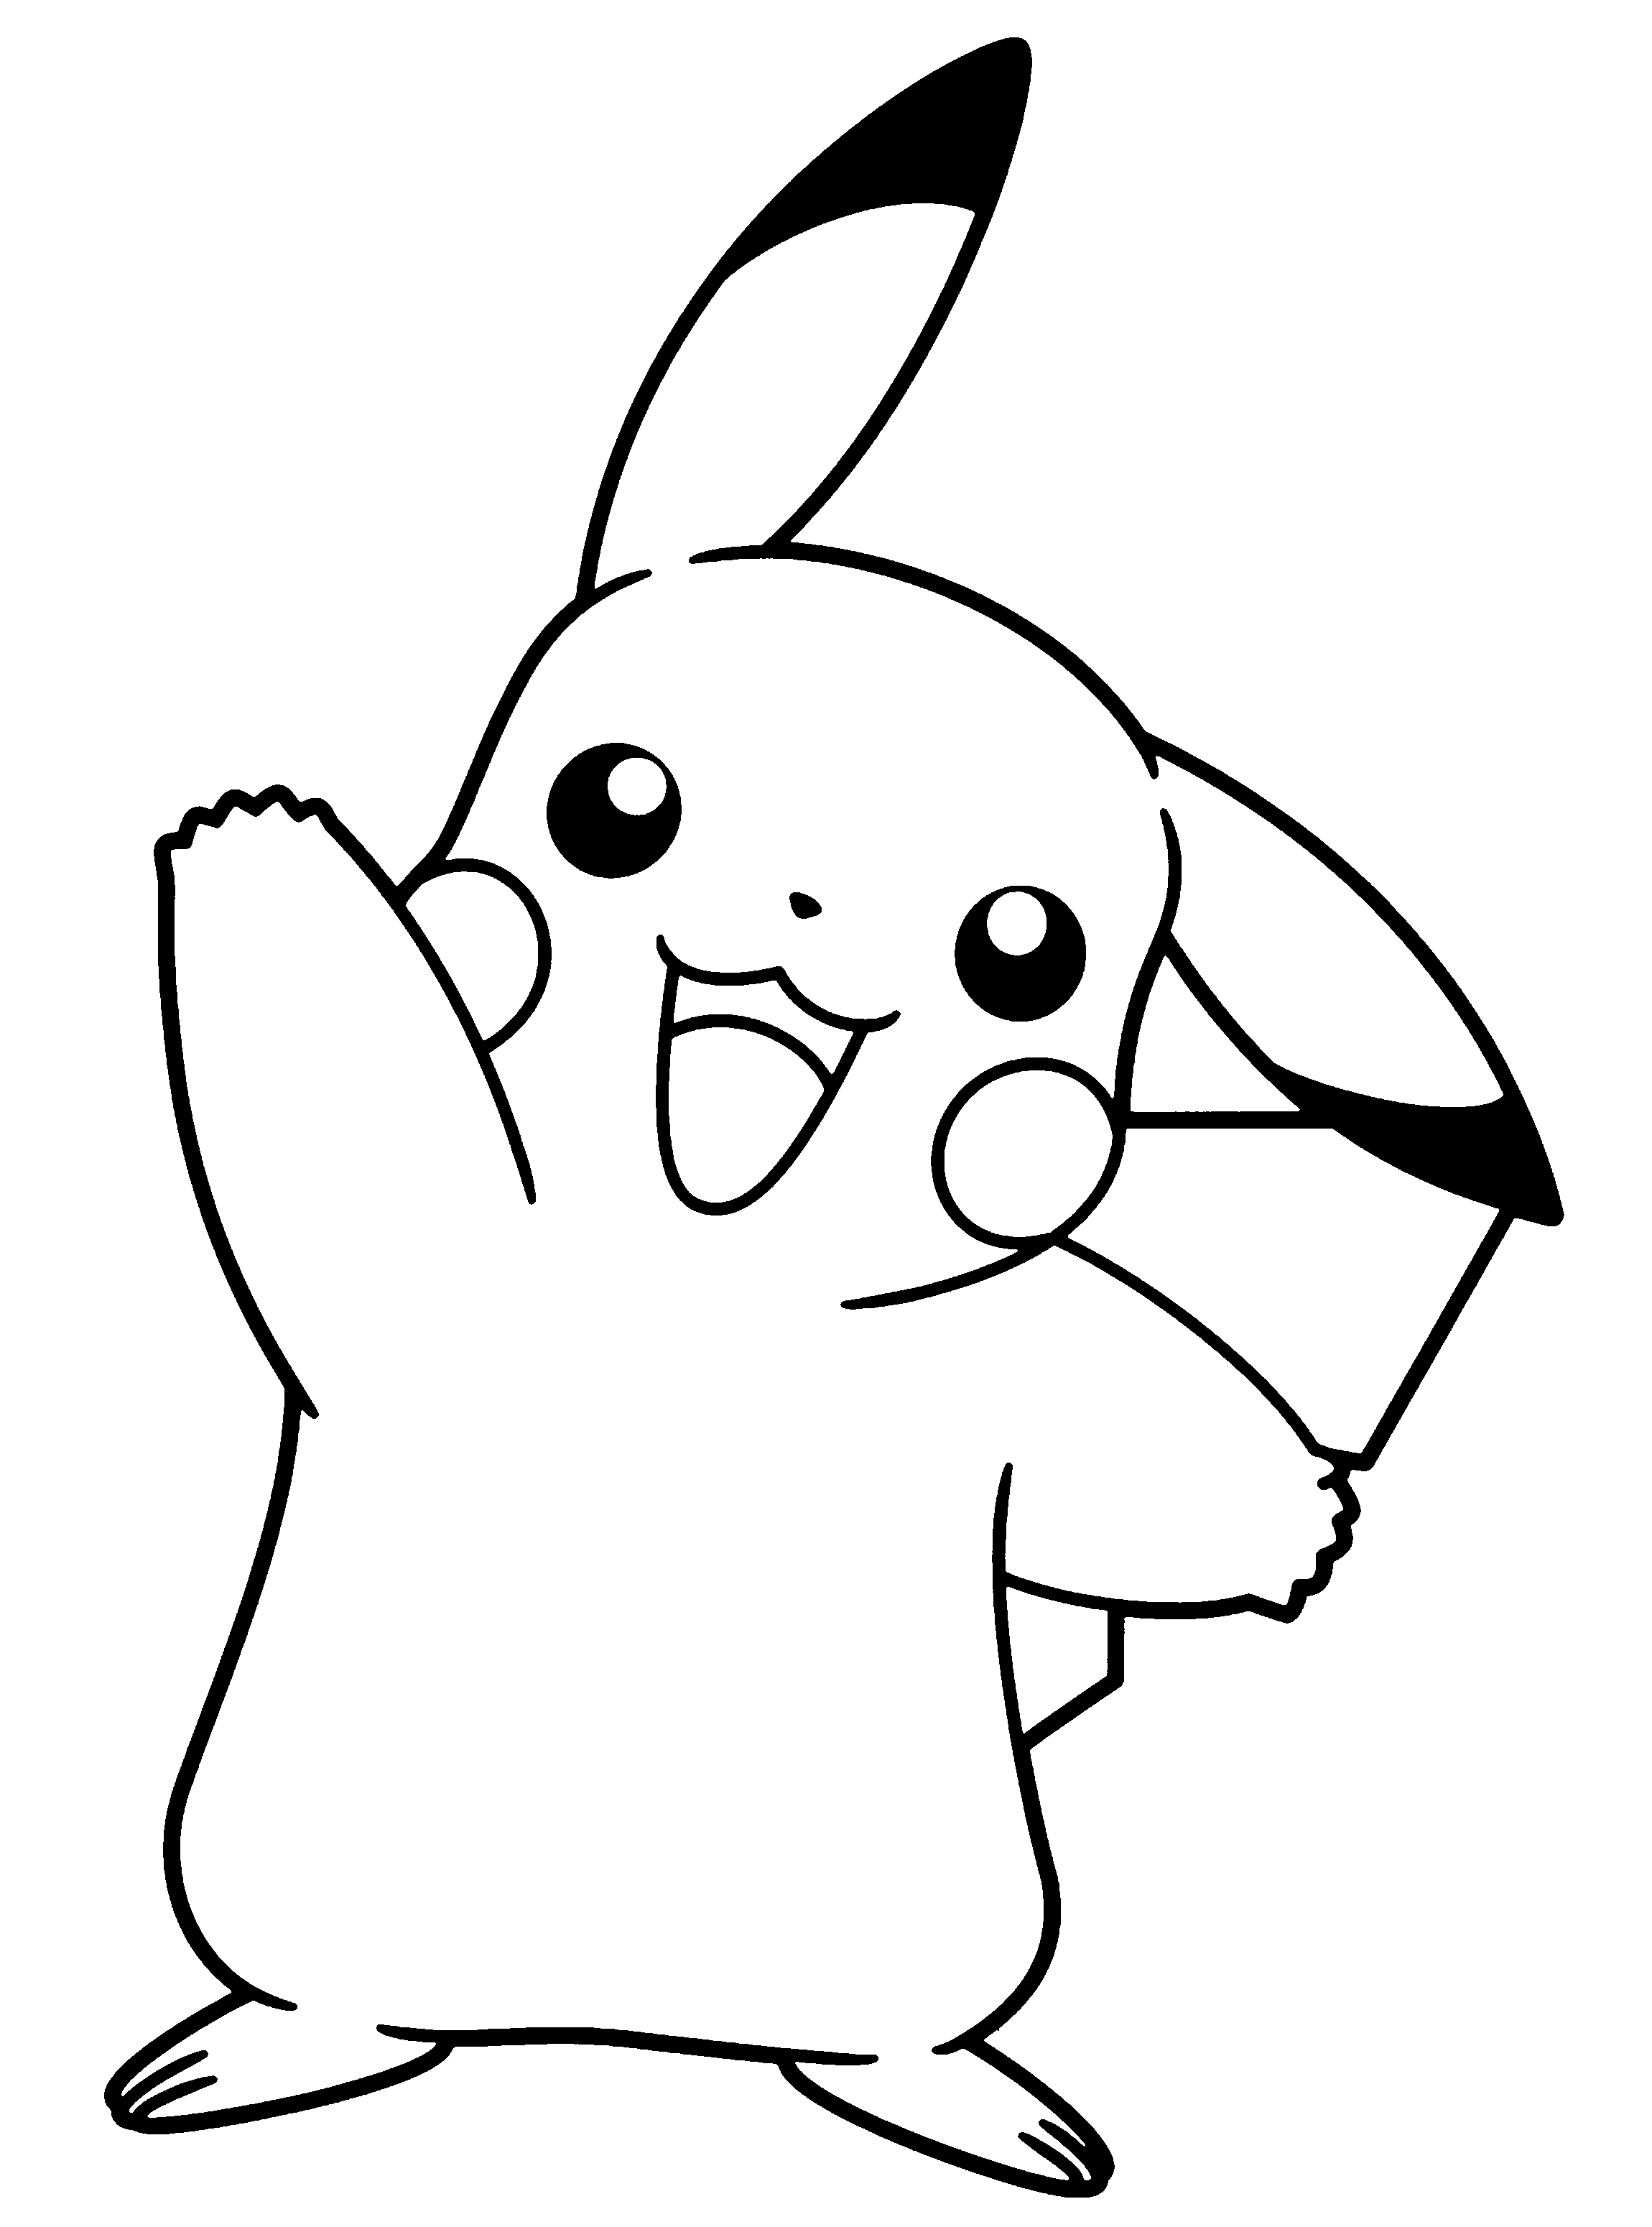 pokemon pictures from black and white pikachu vector black and white soidergi from black white pokemon pictures and